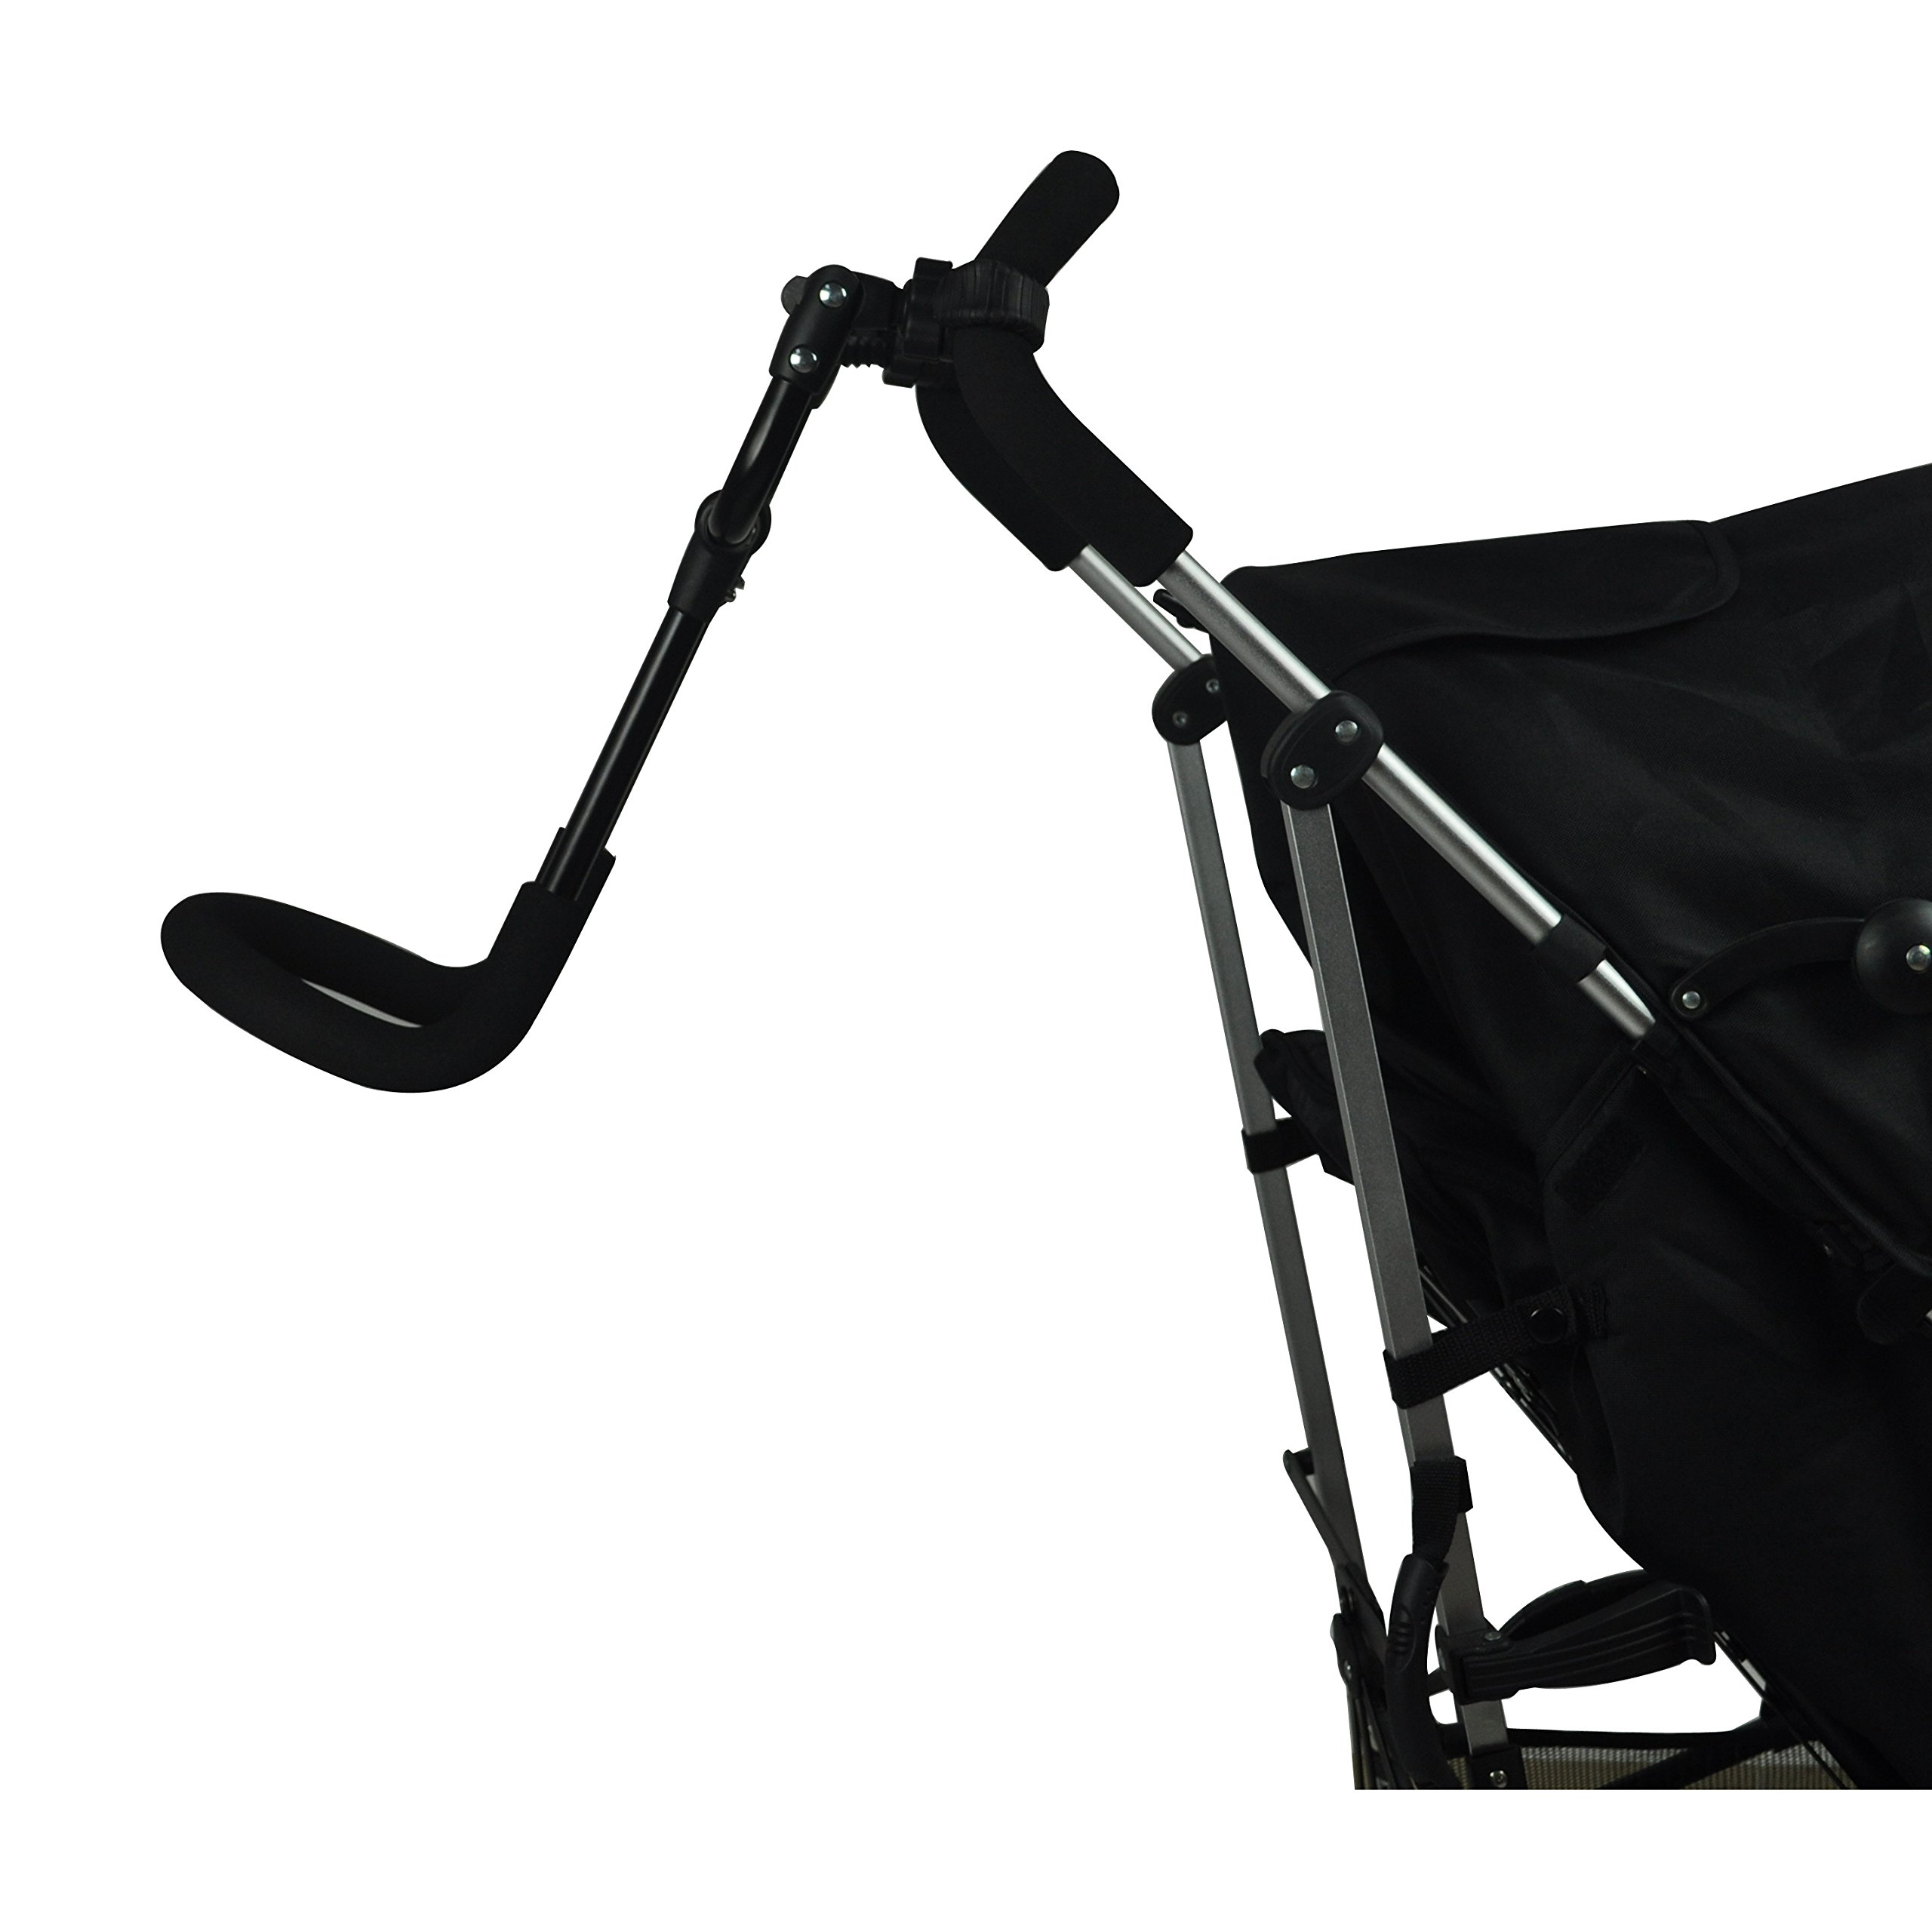 Englacha Cozy Stroll Handle Extension Bar, Black Englacha USA Universal lightweight handle extension bar (aluminum tube) can be installed on any buggy, stroller or pram without extra tools required Allows you control your stroller with just one hand and multitask with your free hand Increases extra at least 12-15 cm space for walking in the back of stroller 2